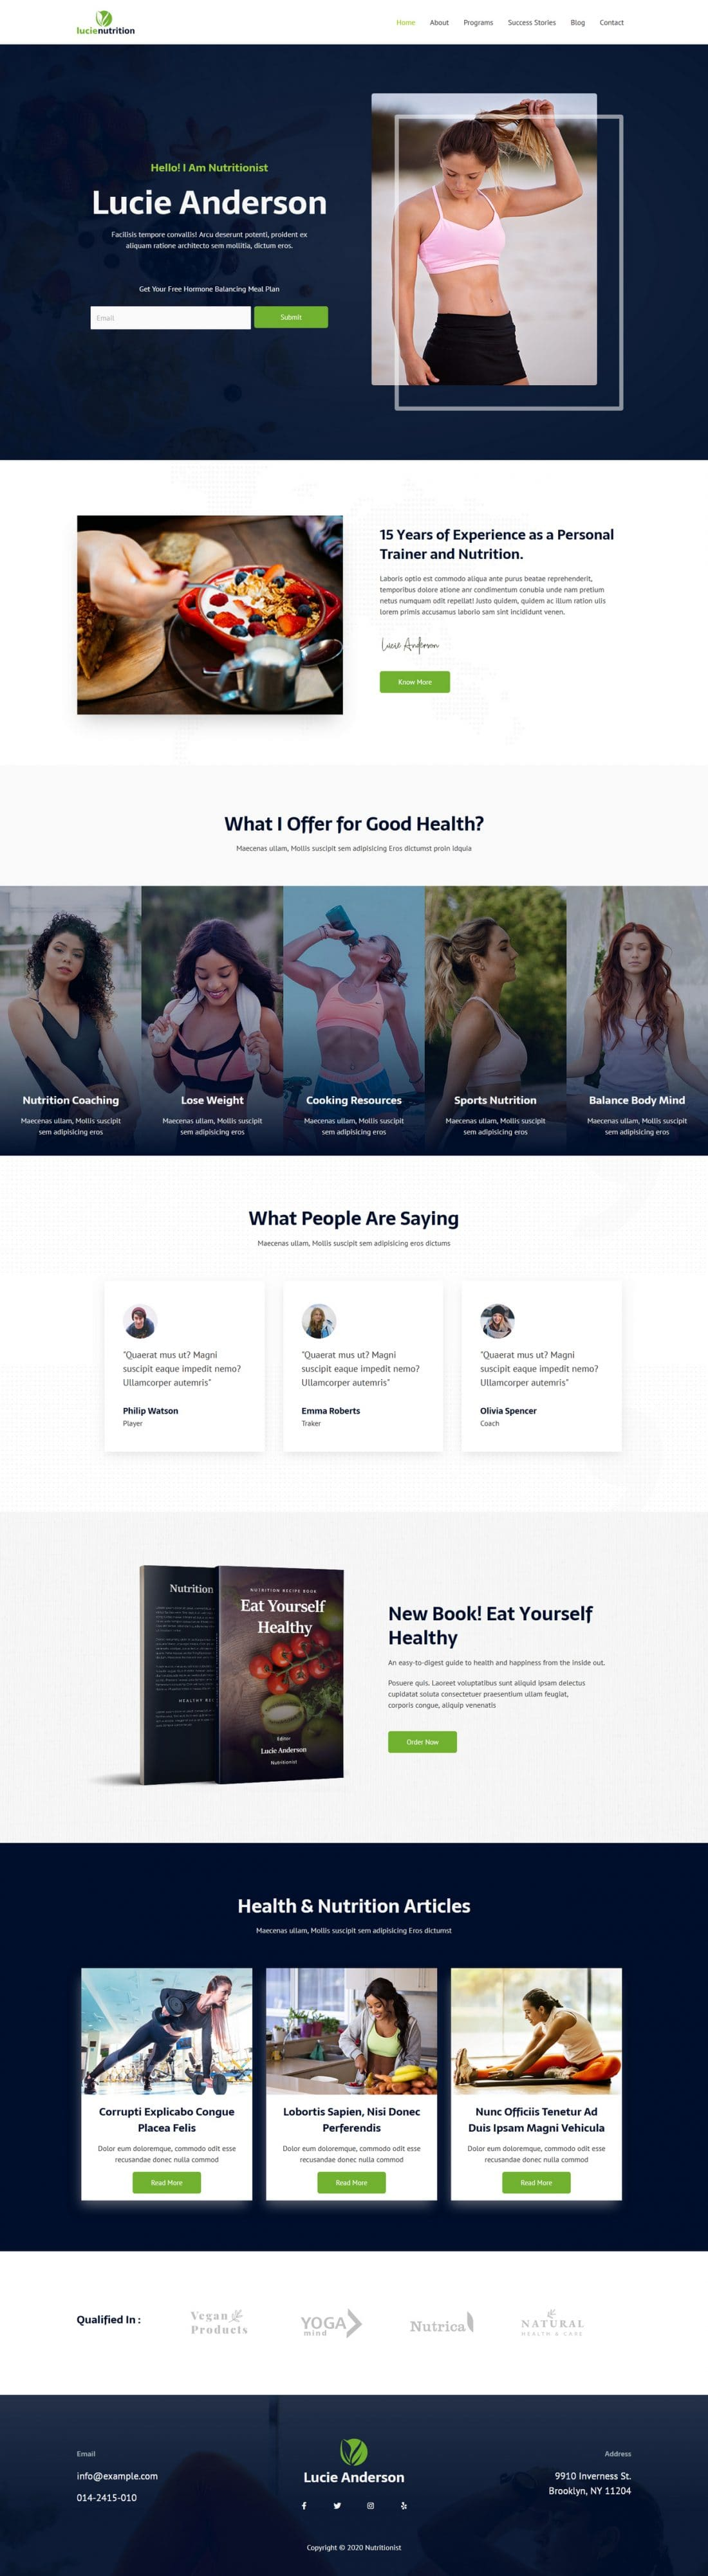 Fagowi.com Website Design Templates For Nutritionist Female Weight Loss - Home Page Image